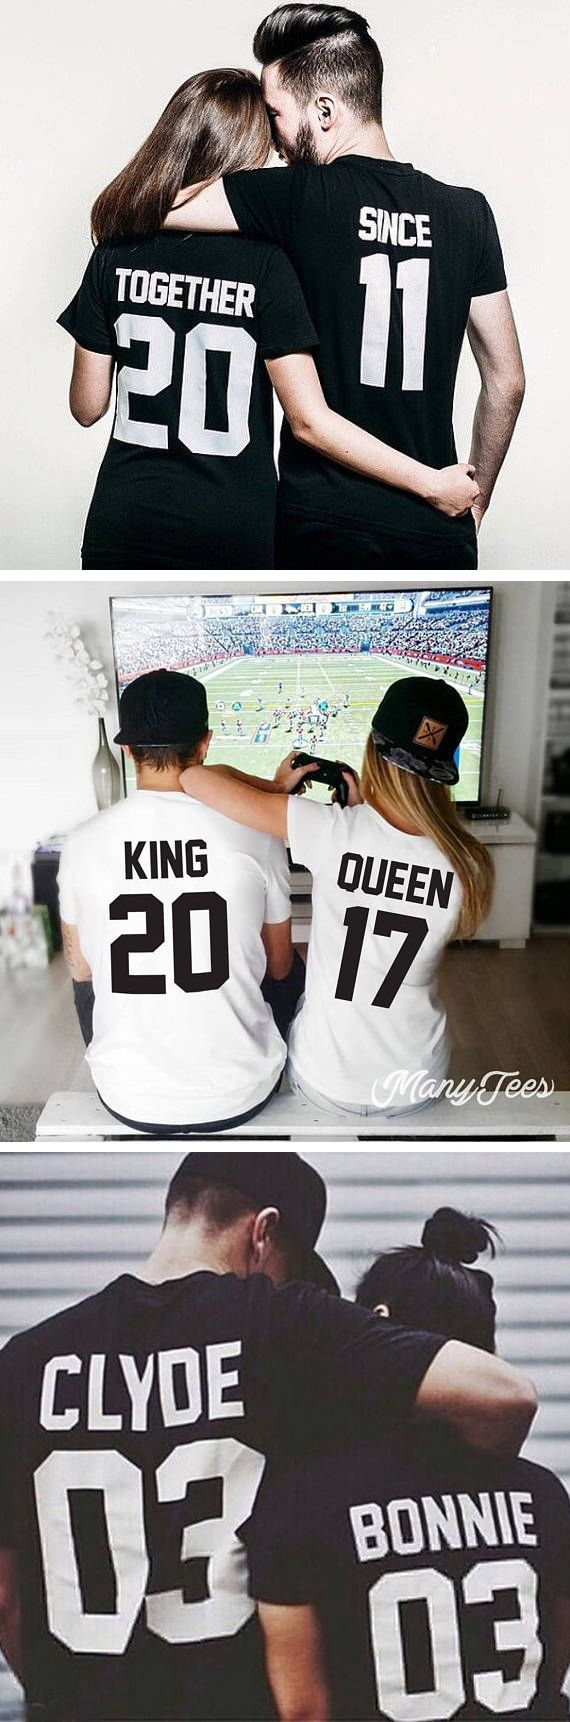 The cutest couples tee shirts- just found my next anniversary gift. These are SO cuuuute! #anniversarygift #couplestshirts #romantictees {aff}